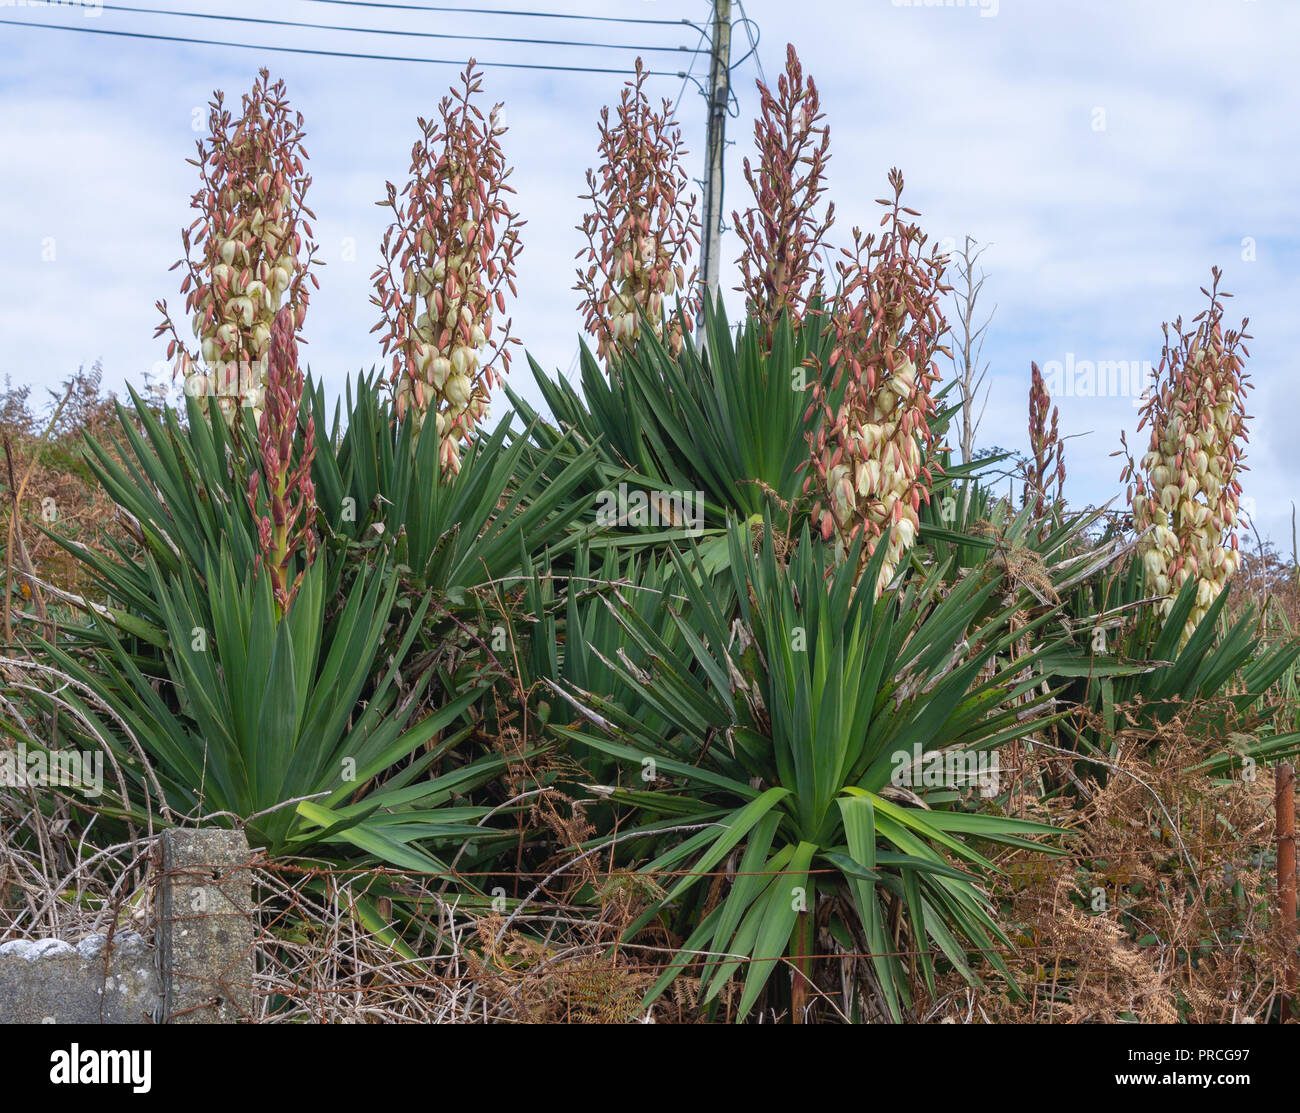 yukka-plant-flowering-growing-amongst-ferns-in-west-cork-ireland-PRCG97.jpg